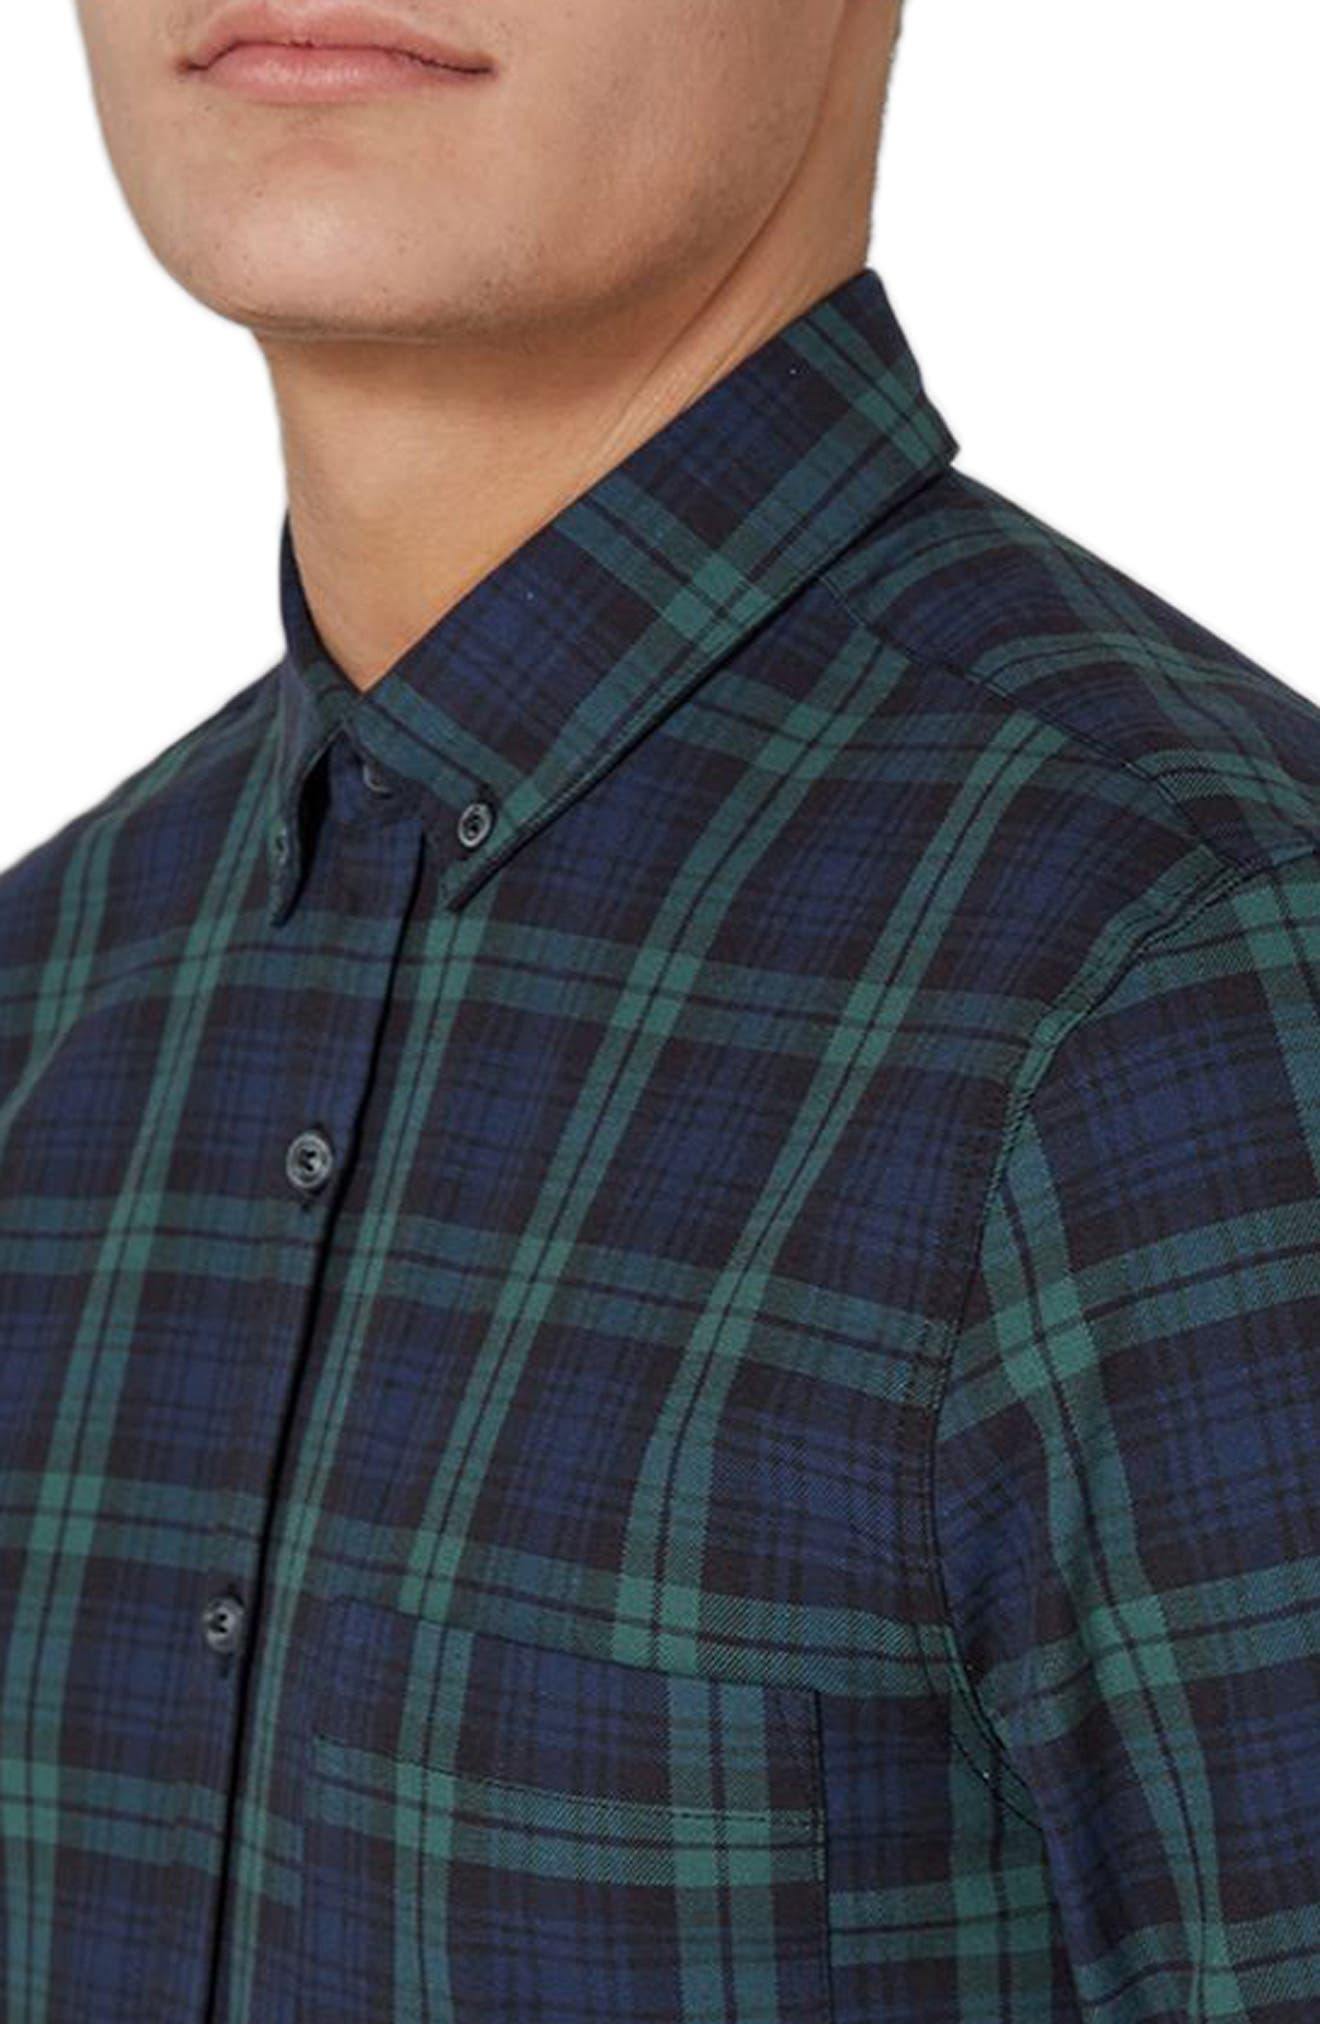 Muscle Fit Black Watch Plaid Shirt,                             Alternate thumbnail 3, color,